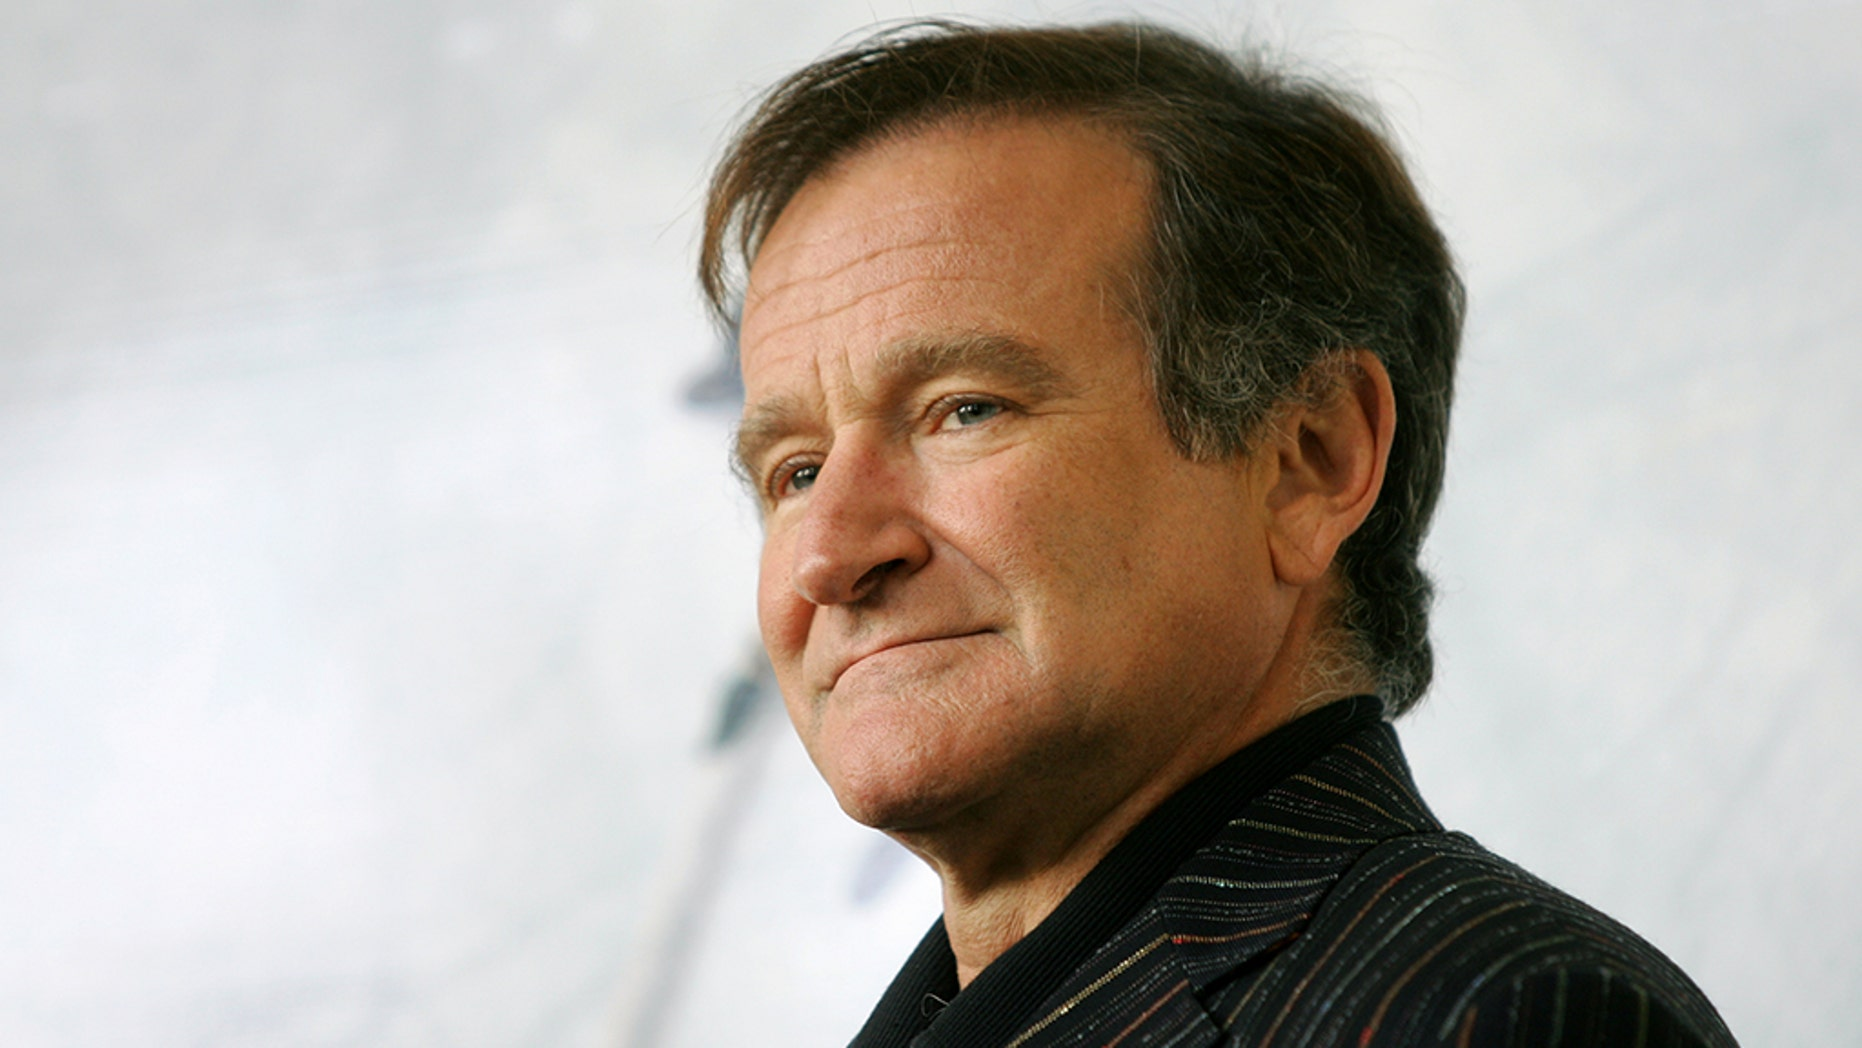 Fans of beloved departed actor Robin Williams will have the chance to own some of his personal effects, which Sotheby's said are to be included in an auction this fall.